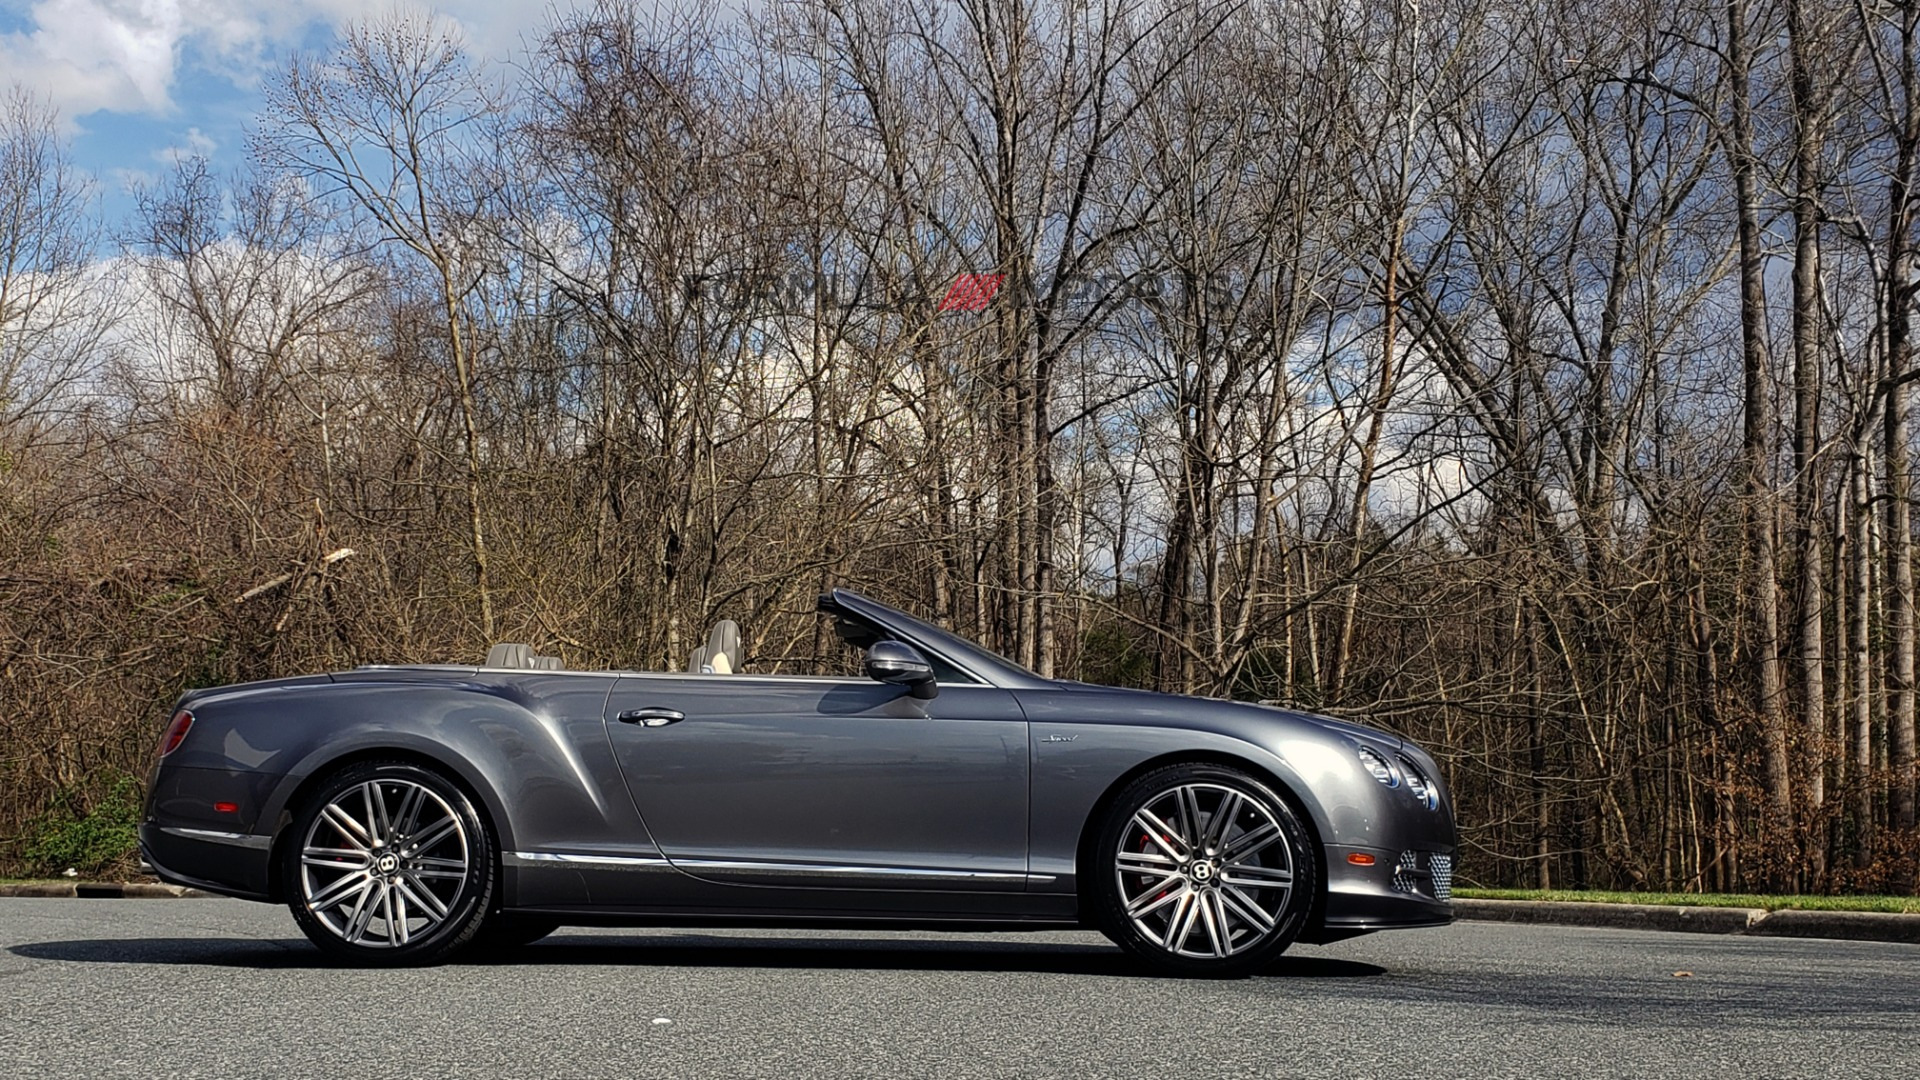 Used 2015 Bentley CONTINENTAL SPEED CONV / 6.0L W12 / NAV / VENT SEATS / REARVIEW for sale Sold at Formula Imports in Charlotte NC 28227 10